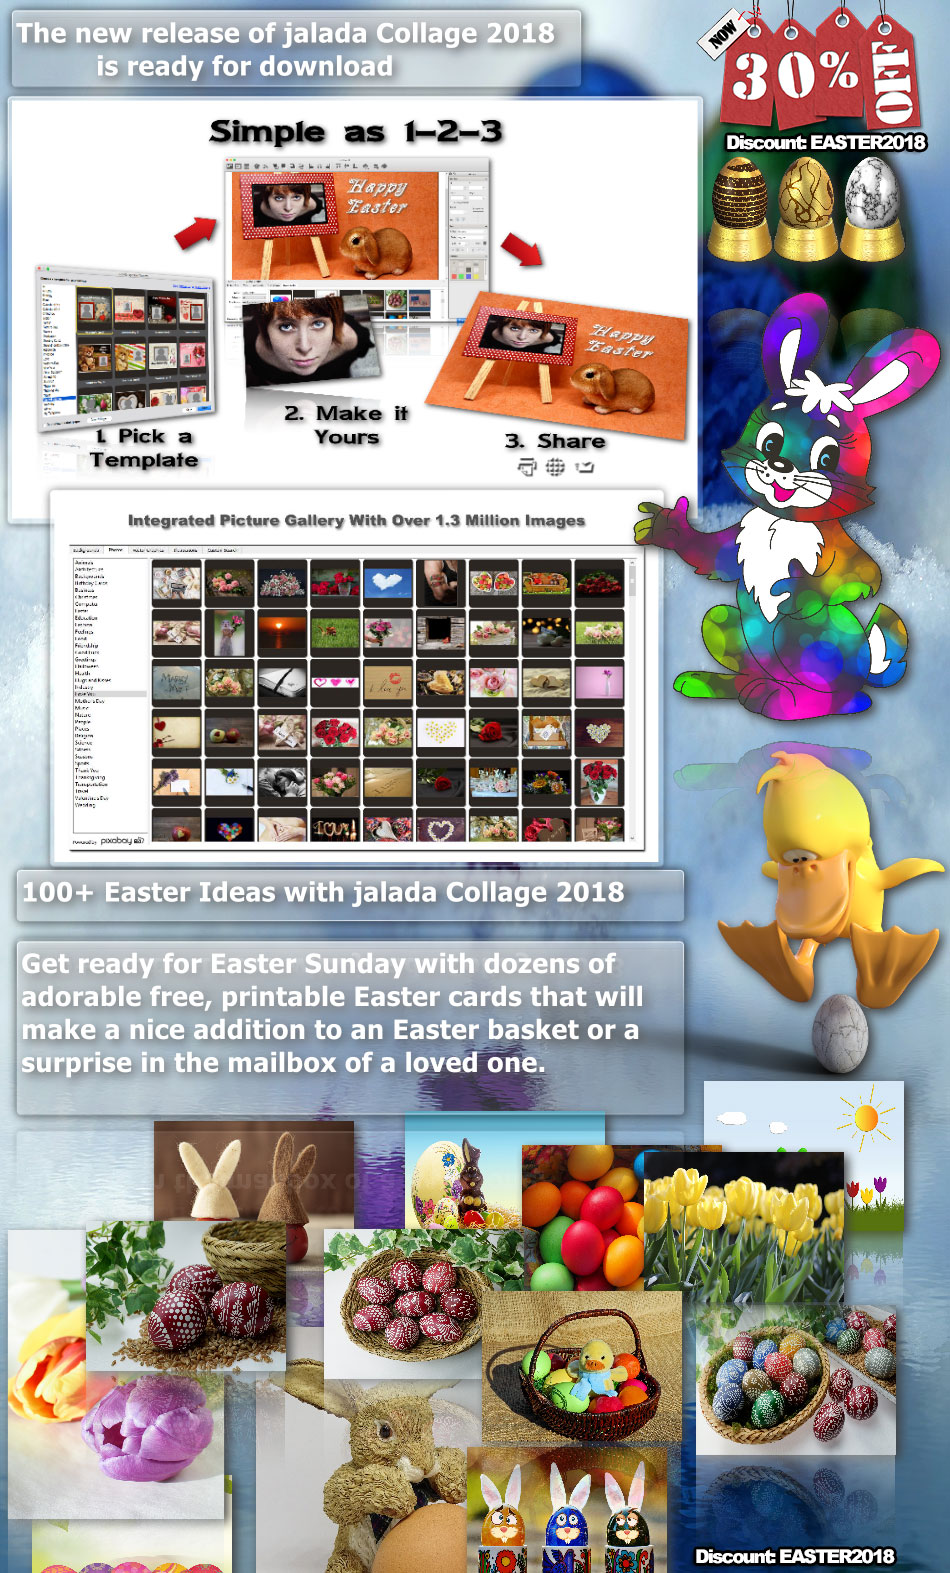 Easter ideas with jalada Collage 2018